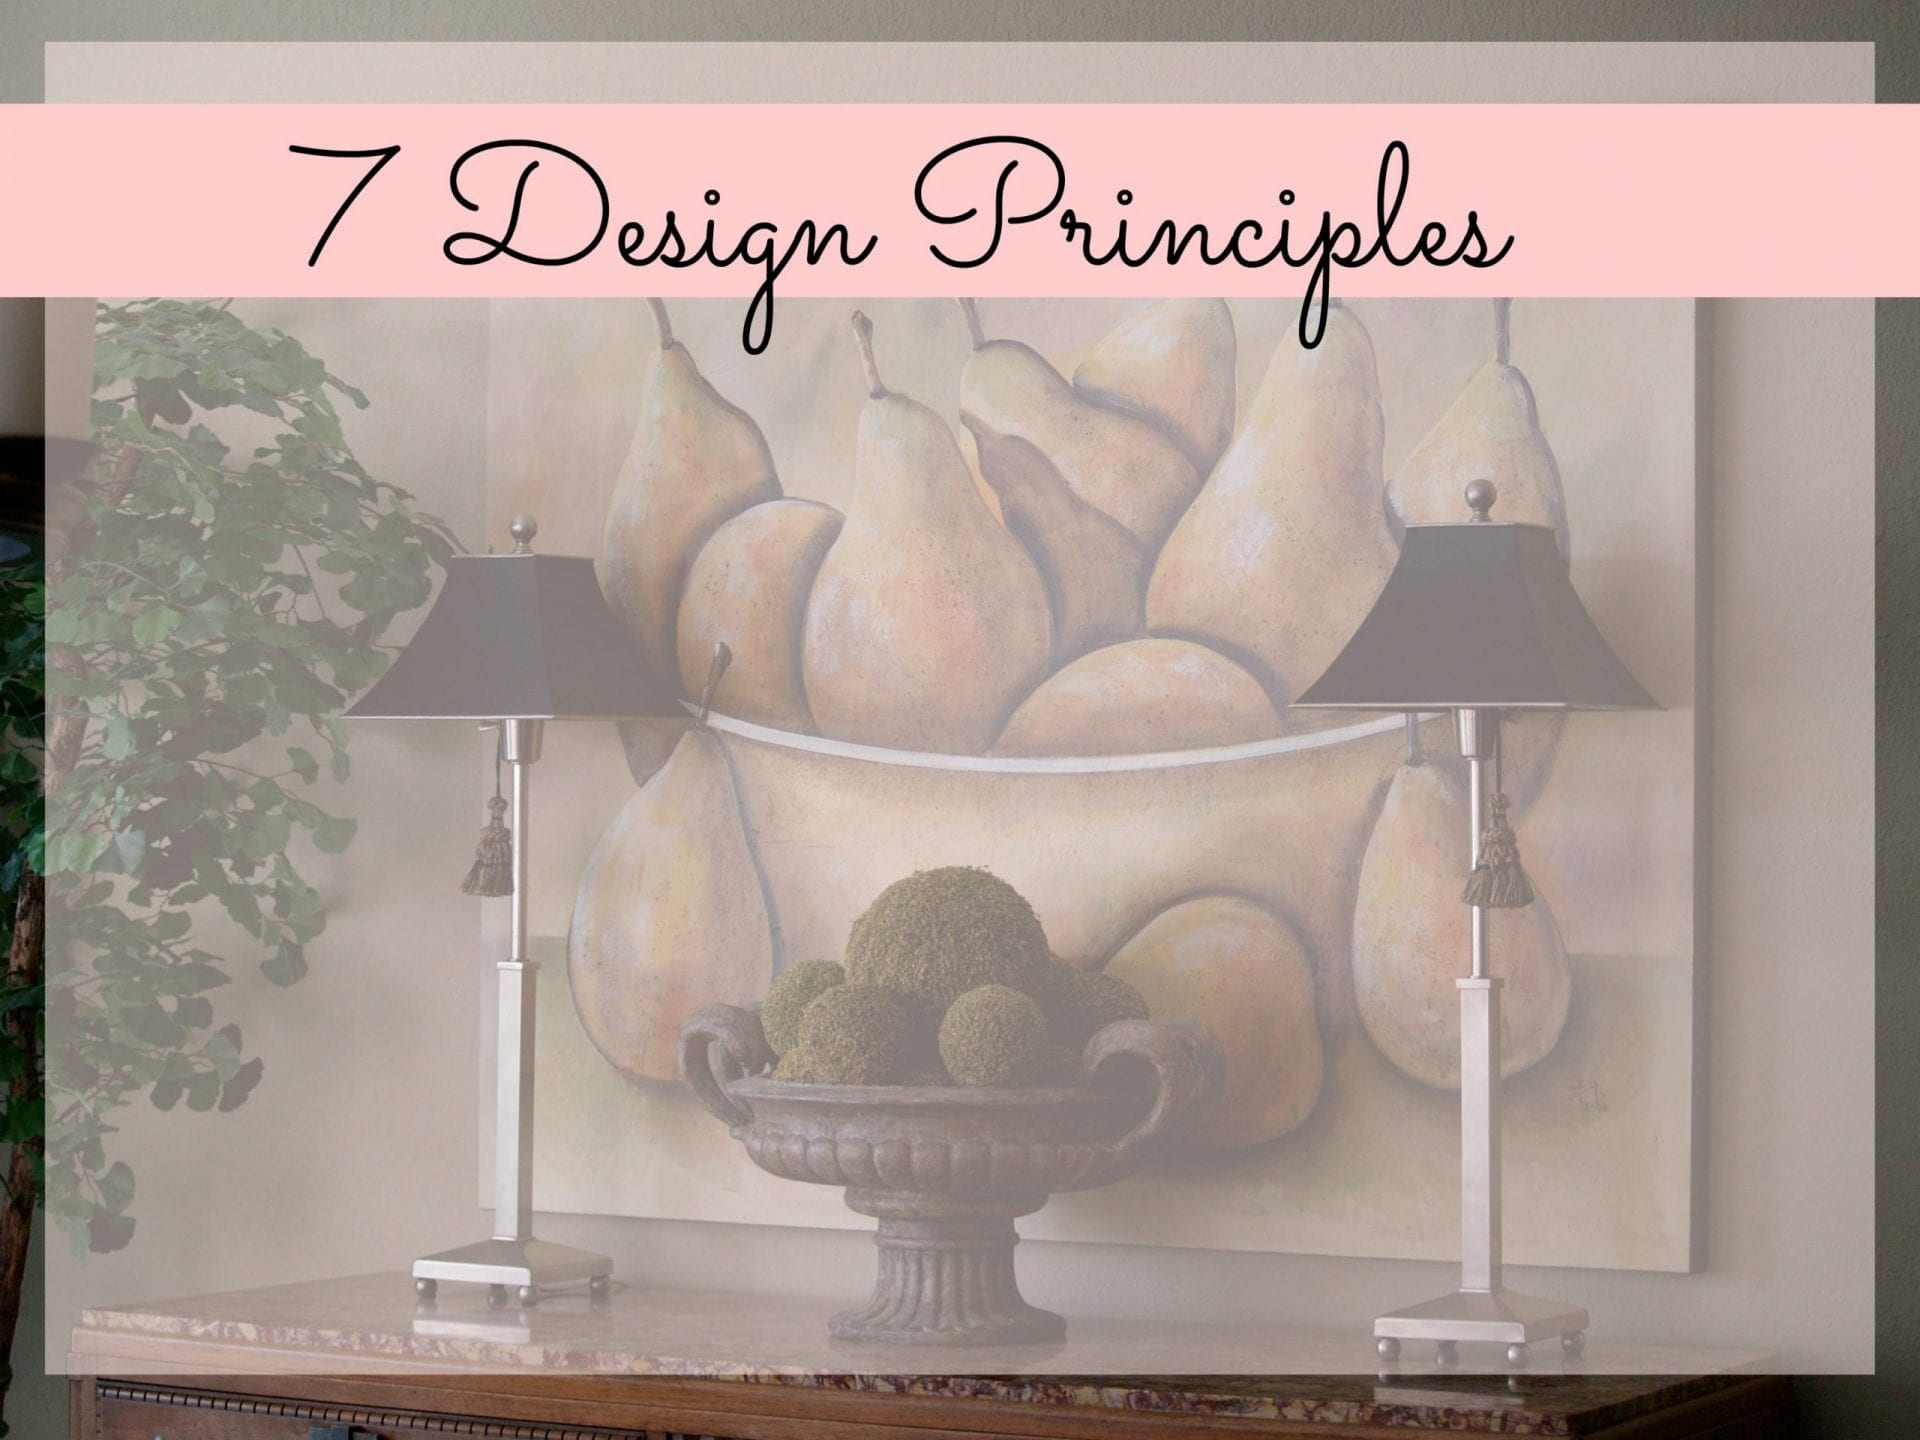 Basic Design Principles In Art : 7 principles of design graphic.jpg